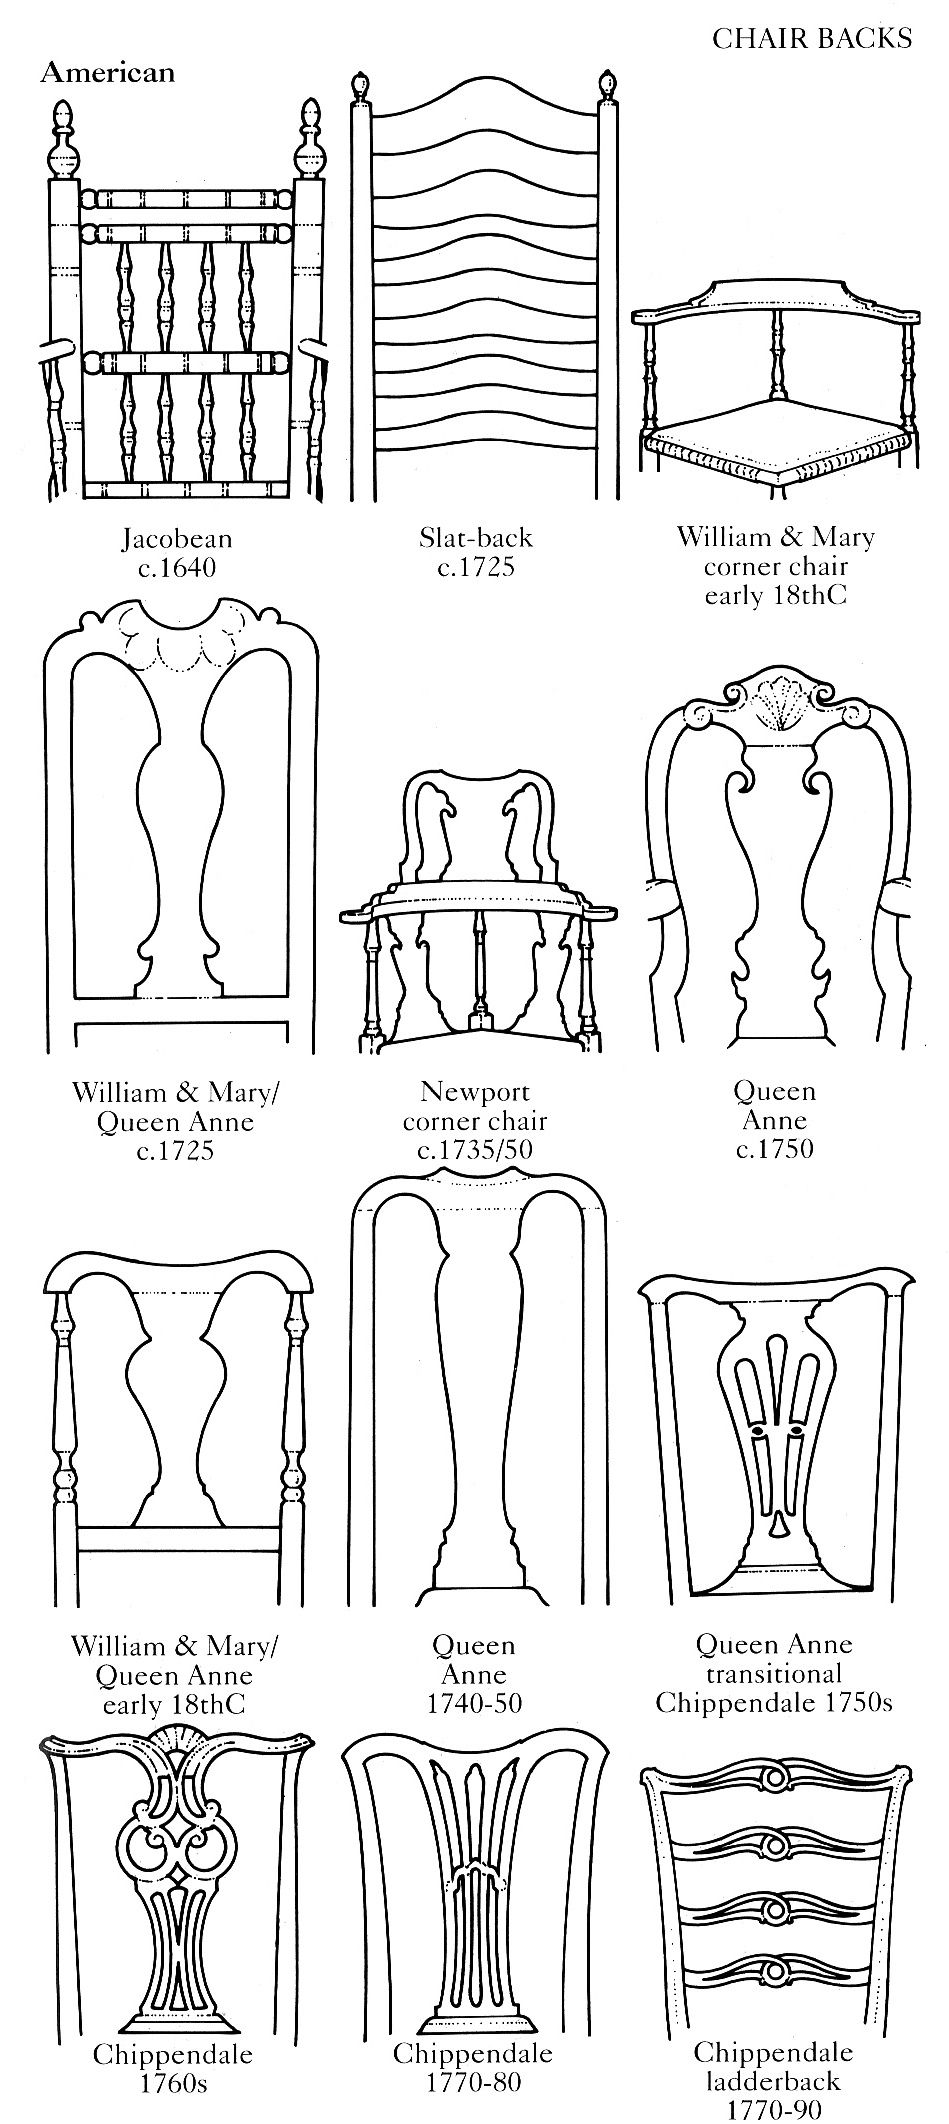 Diagram Of American Chair Backs 17th Century To Late 18th